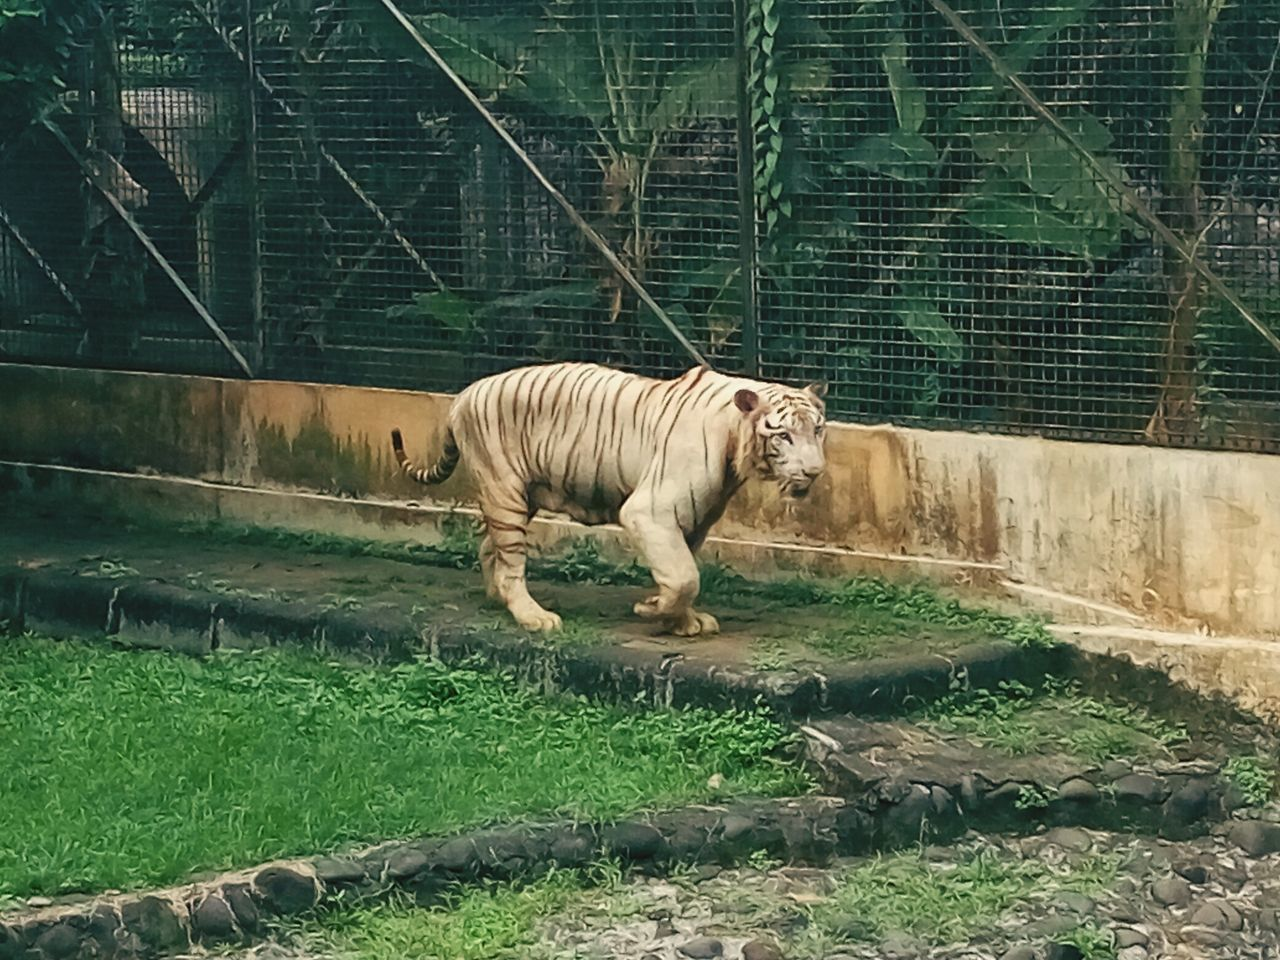 White Tiger Tiger One Animal Animal Themes Mammal Zoo Walking Animal Wildlife Outdoors Day Animals In The Wild White Tiger No People Grass Nature INDONESIA Beauty In Nature